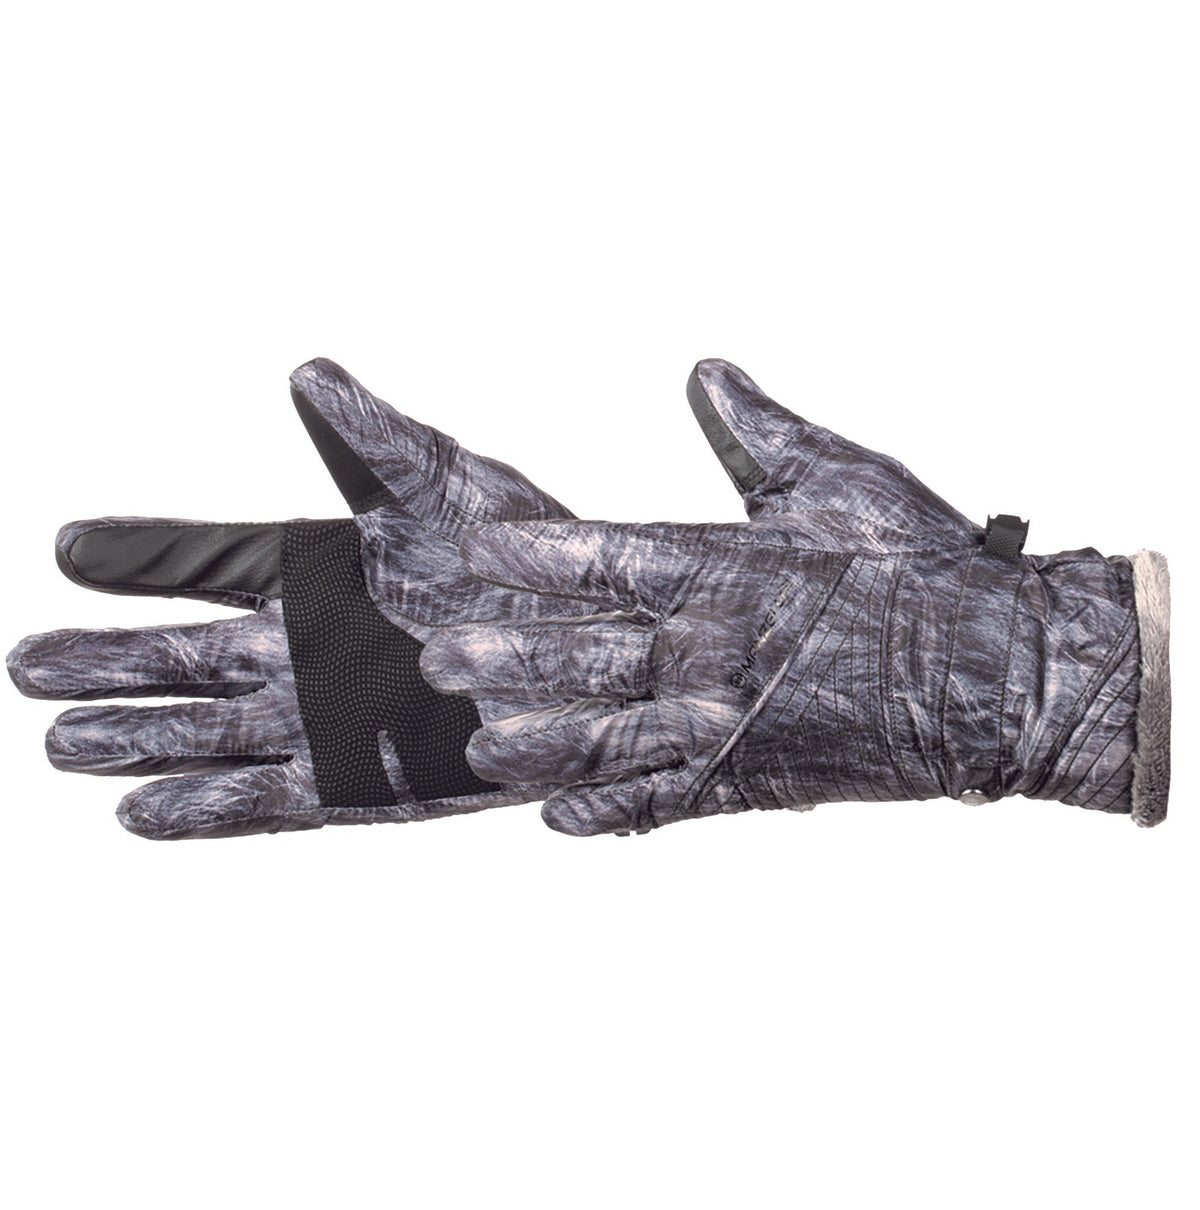 Manzella EMBREE Outdoor Gloves for Women